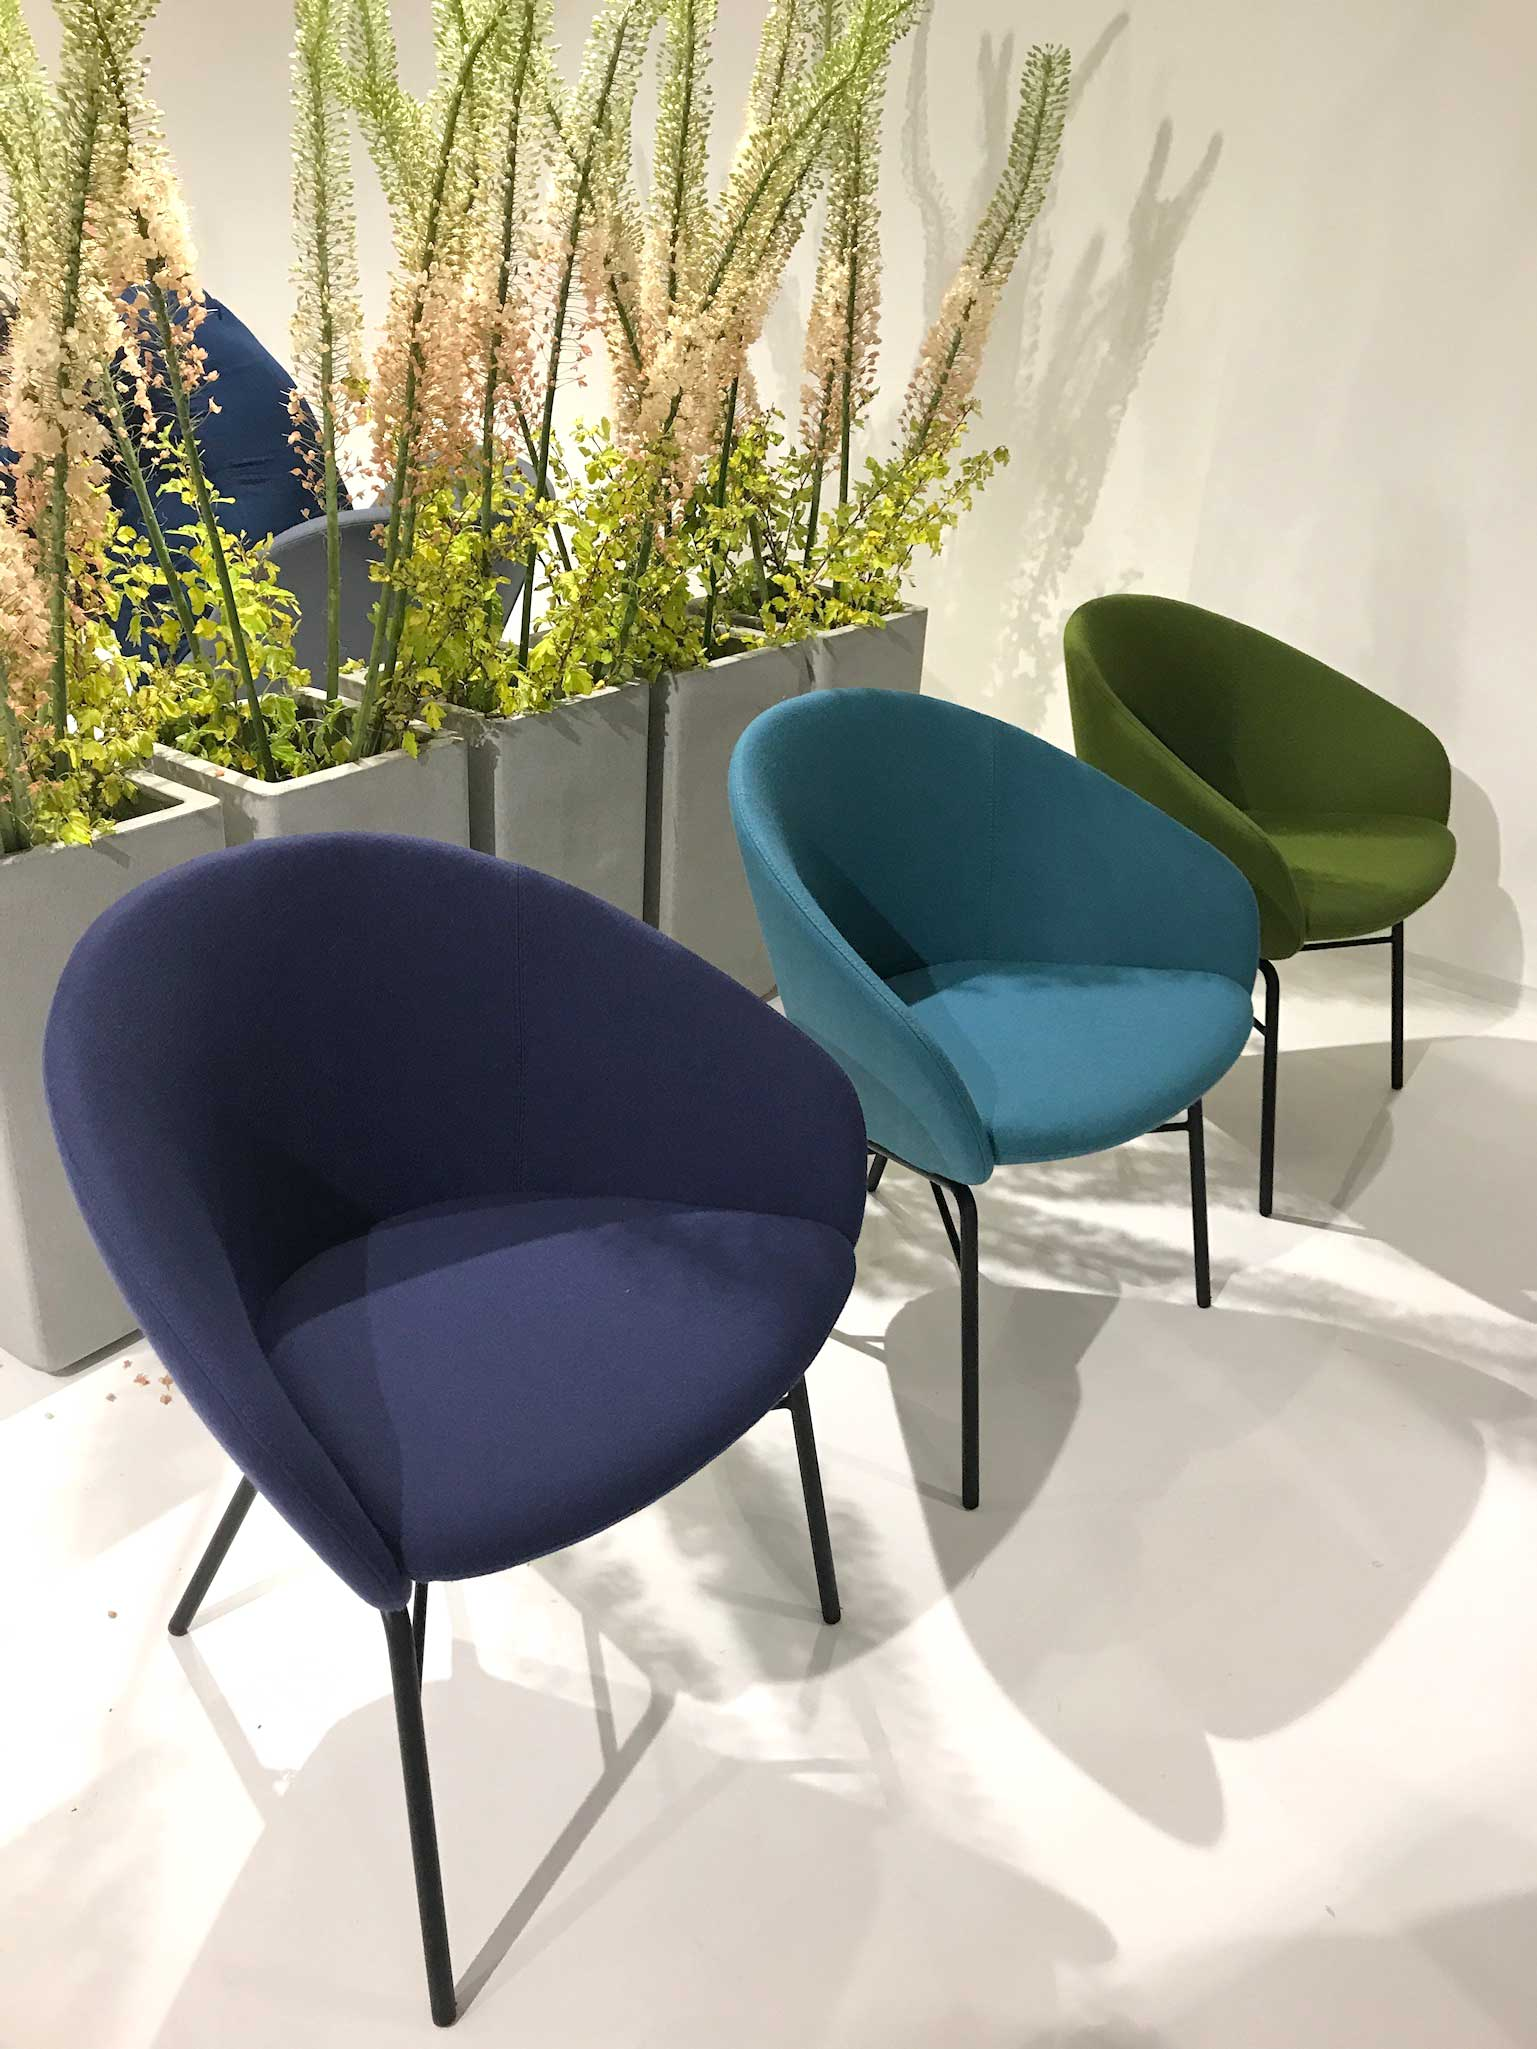 5 Trends We Saw at NeoCon 2018 from Unisource Solutions - 3. streamlined